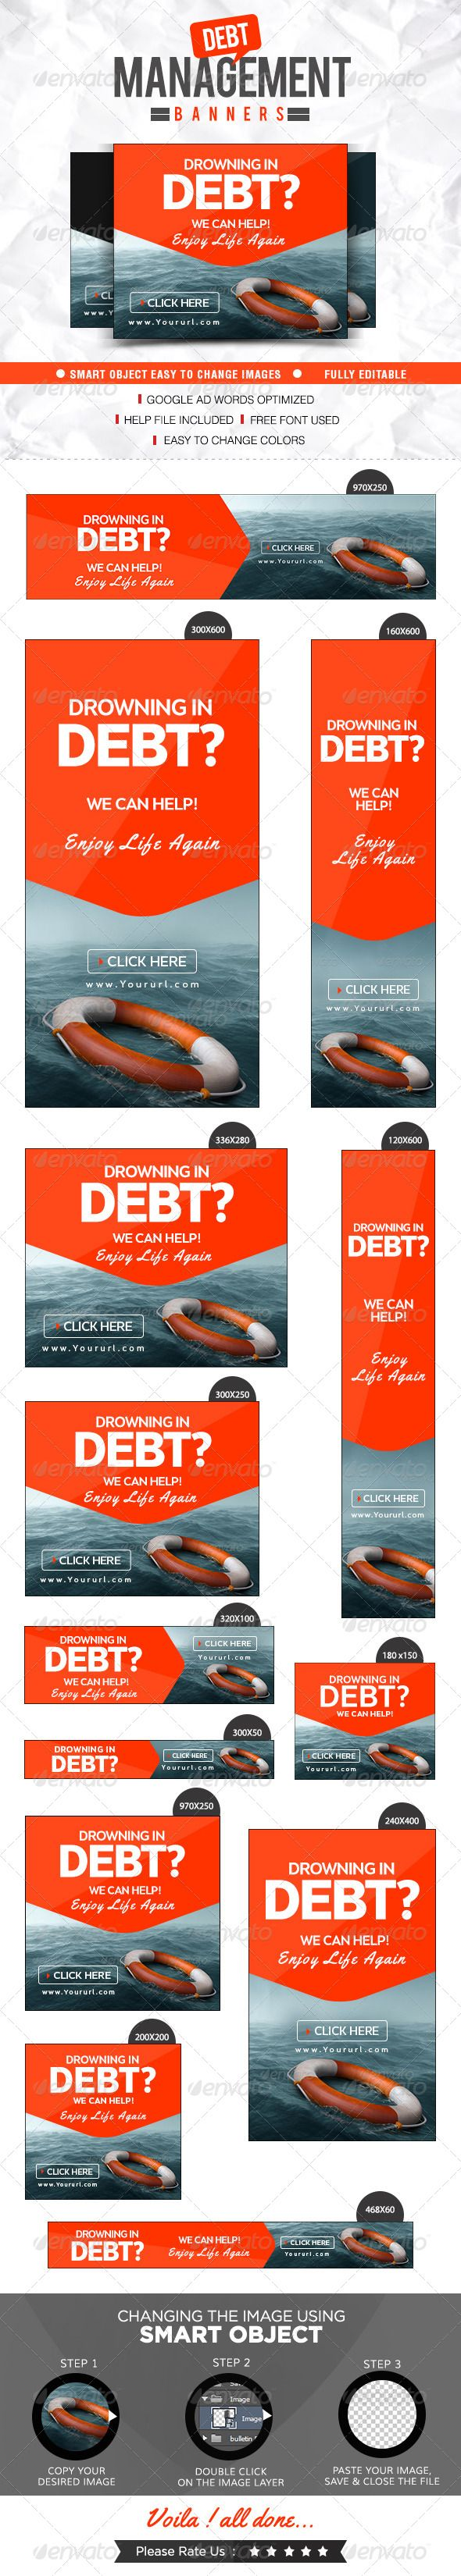 Debt Management Banners Template PSD | Buy and Download: http://graphicriver.net/item/debt-management-banners/8644777?WT.ac=category_thumb&WT.z_author=doto&ref=ksioks